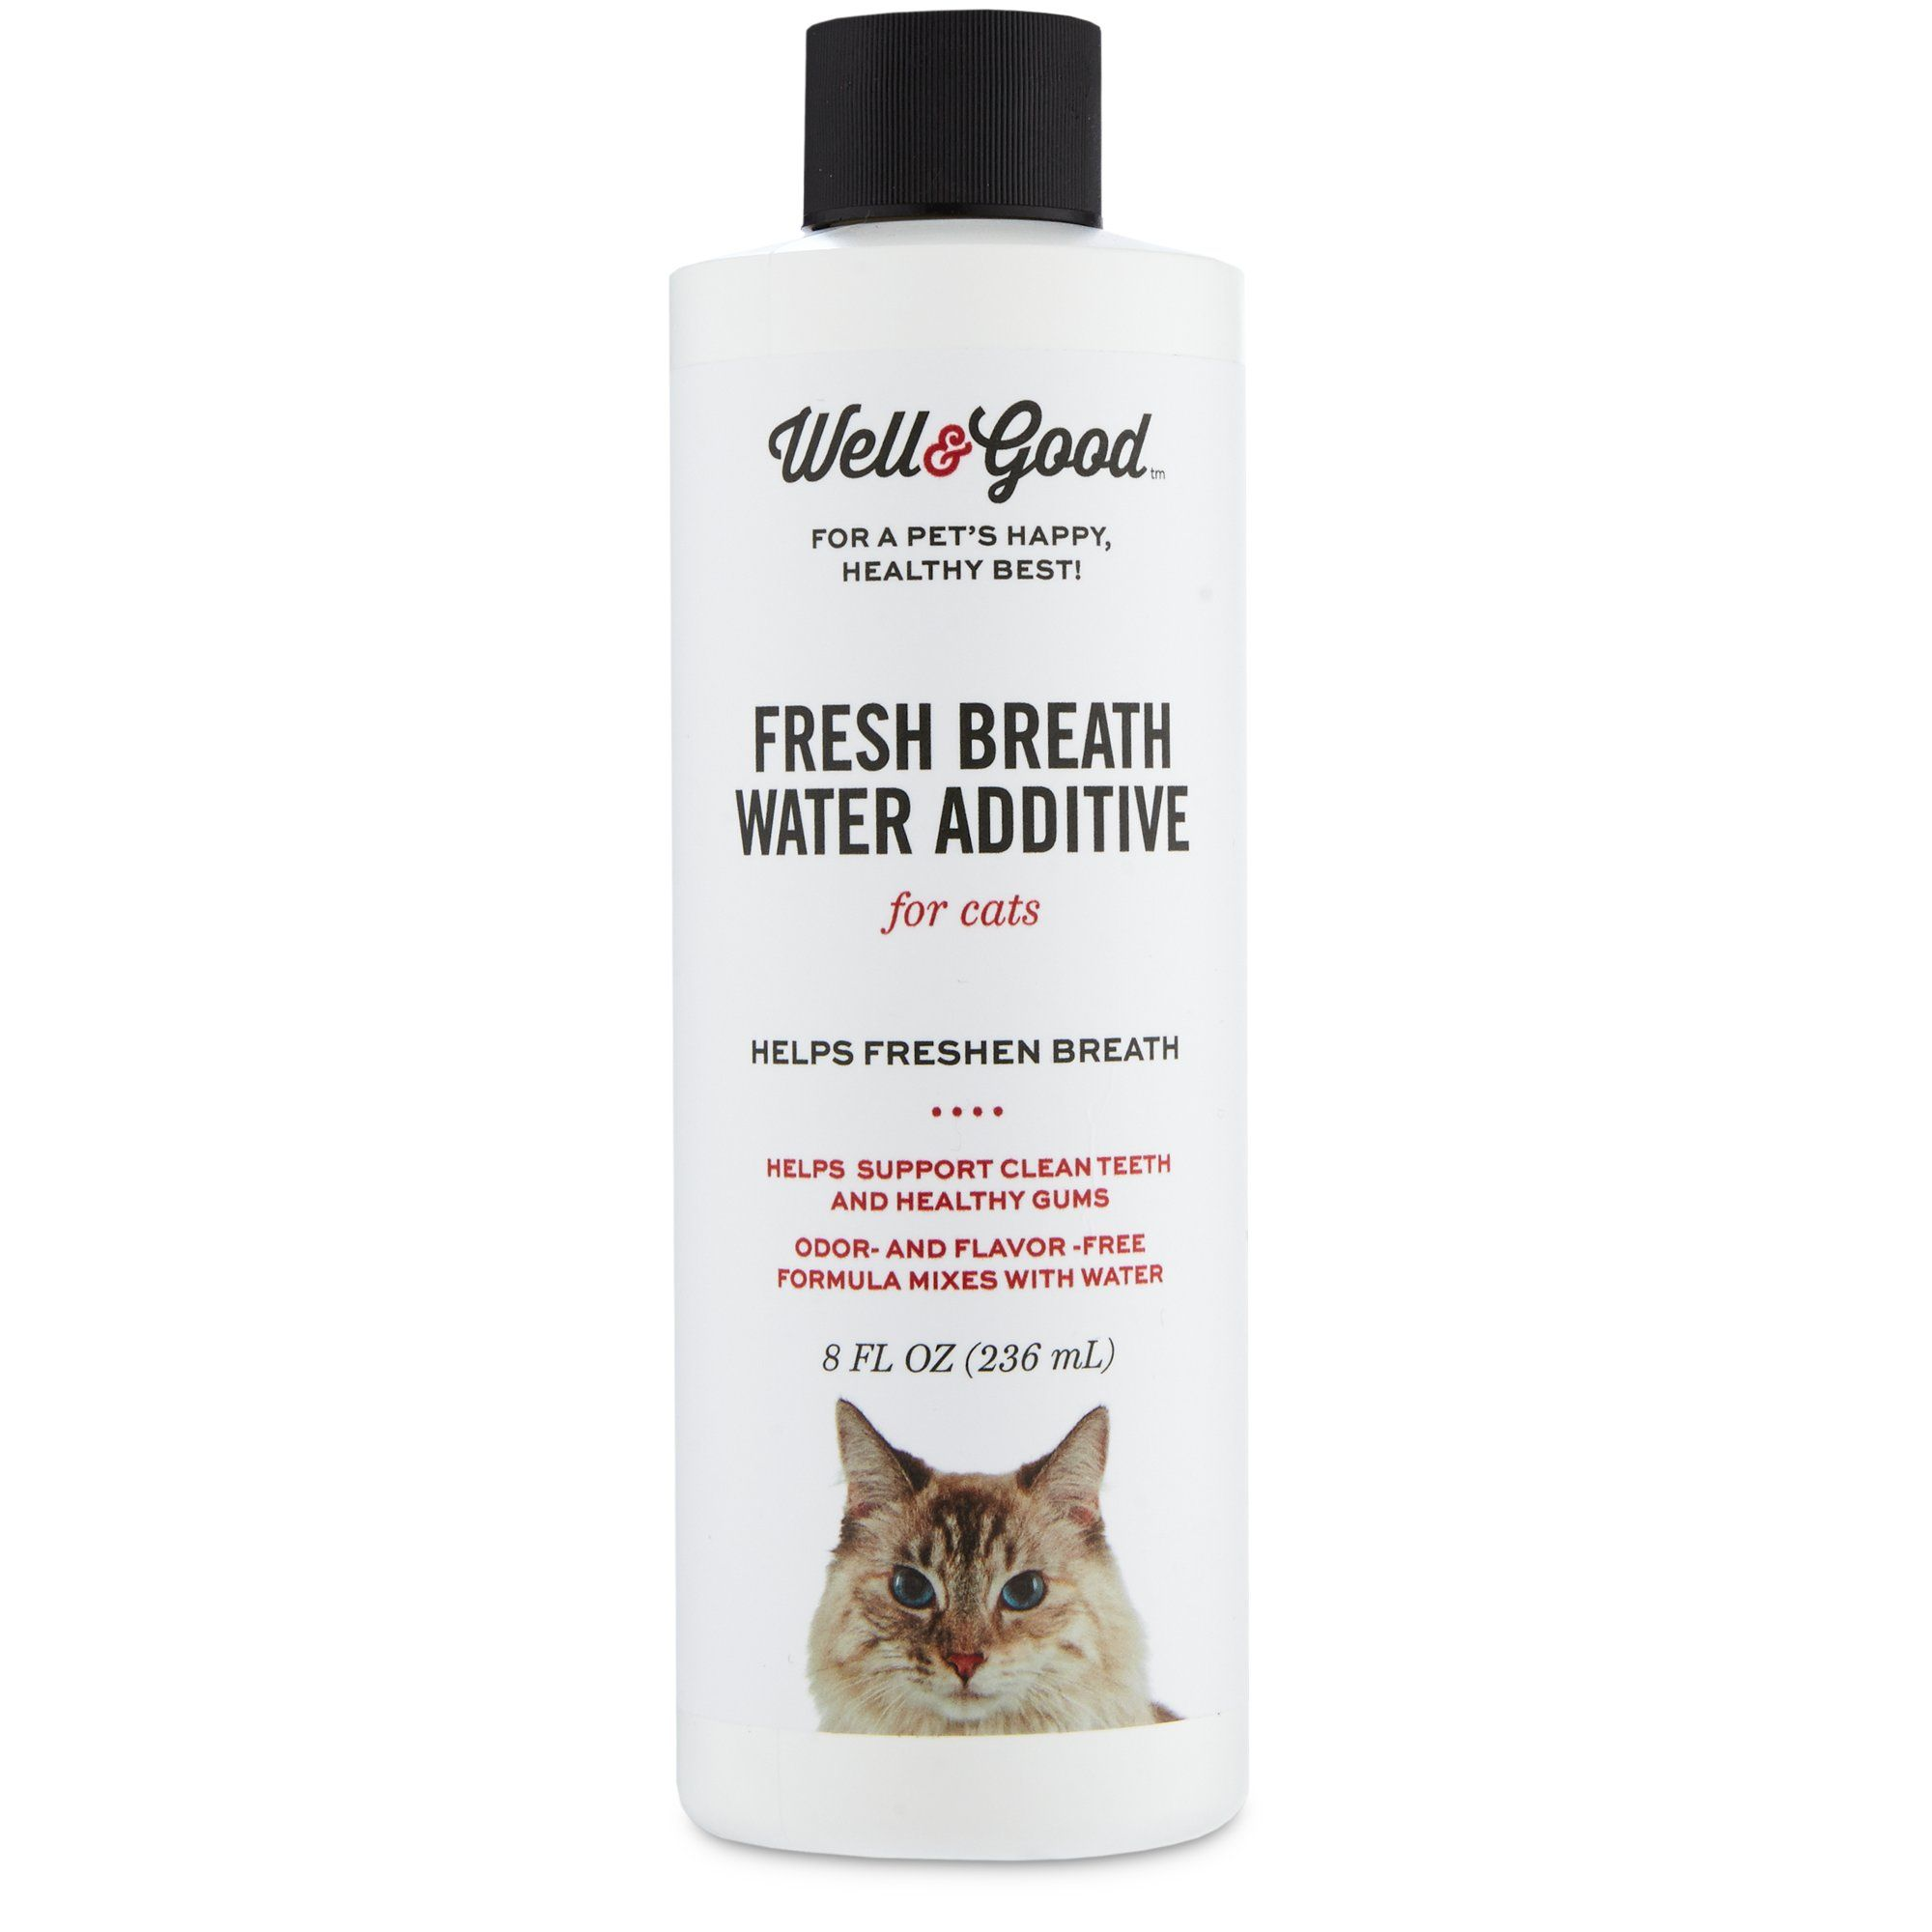 Well Good Fresh Breath Water Additive For Cats 8 Fl Oz Petco Fresh Breath Freshen Breath Cat Breath